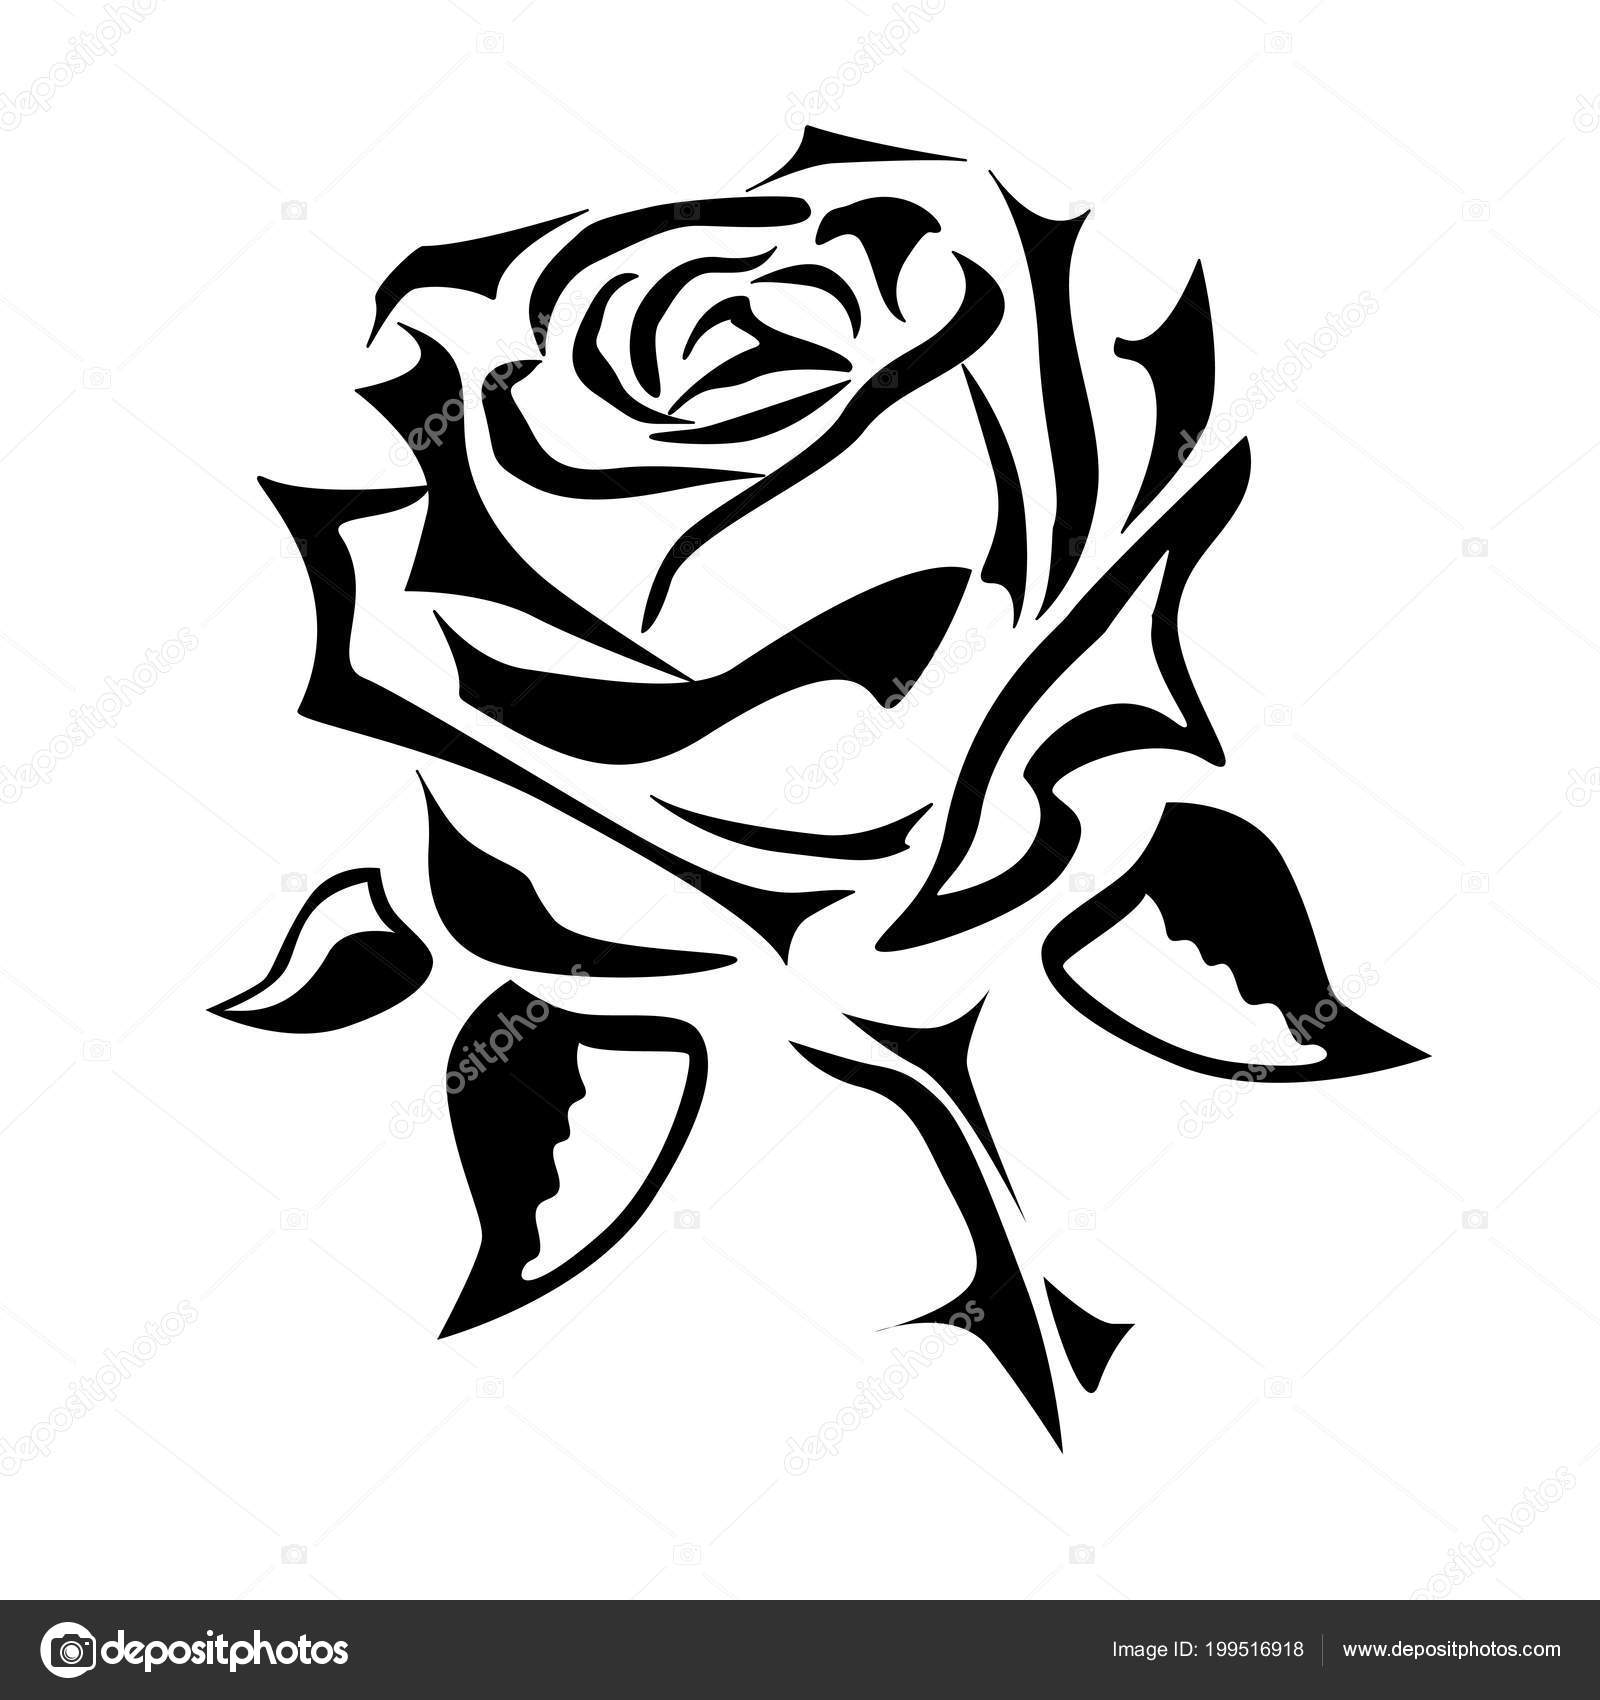 dessin tatouage rose vectoriel logo image vectorielle. Black Bedroom Furniture Sets. Home Design Ideas